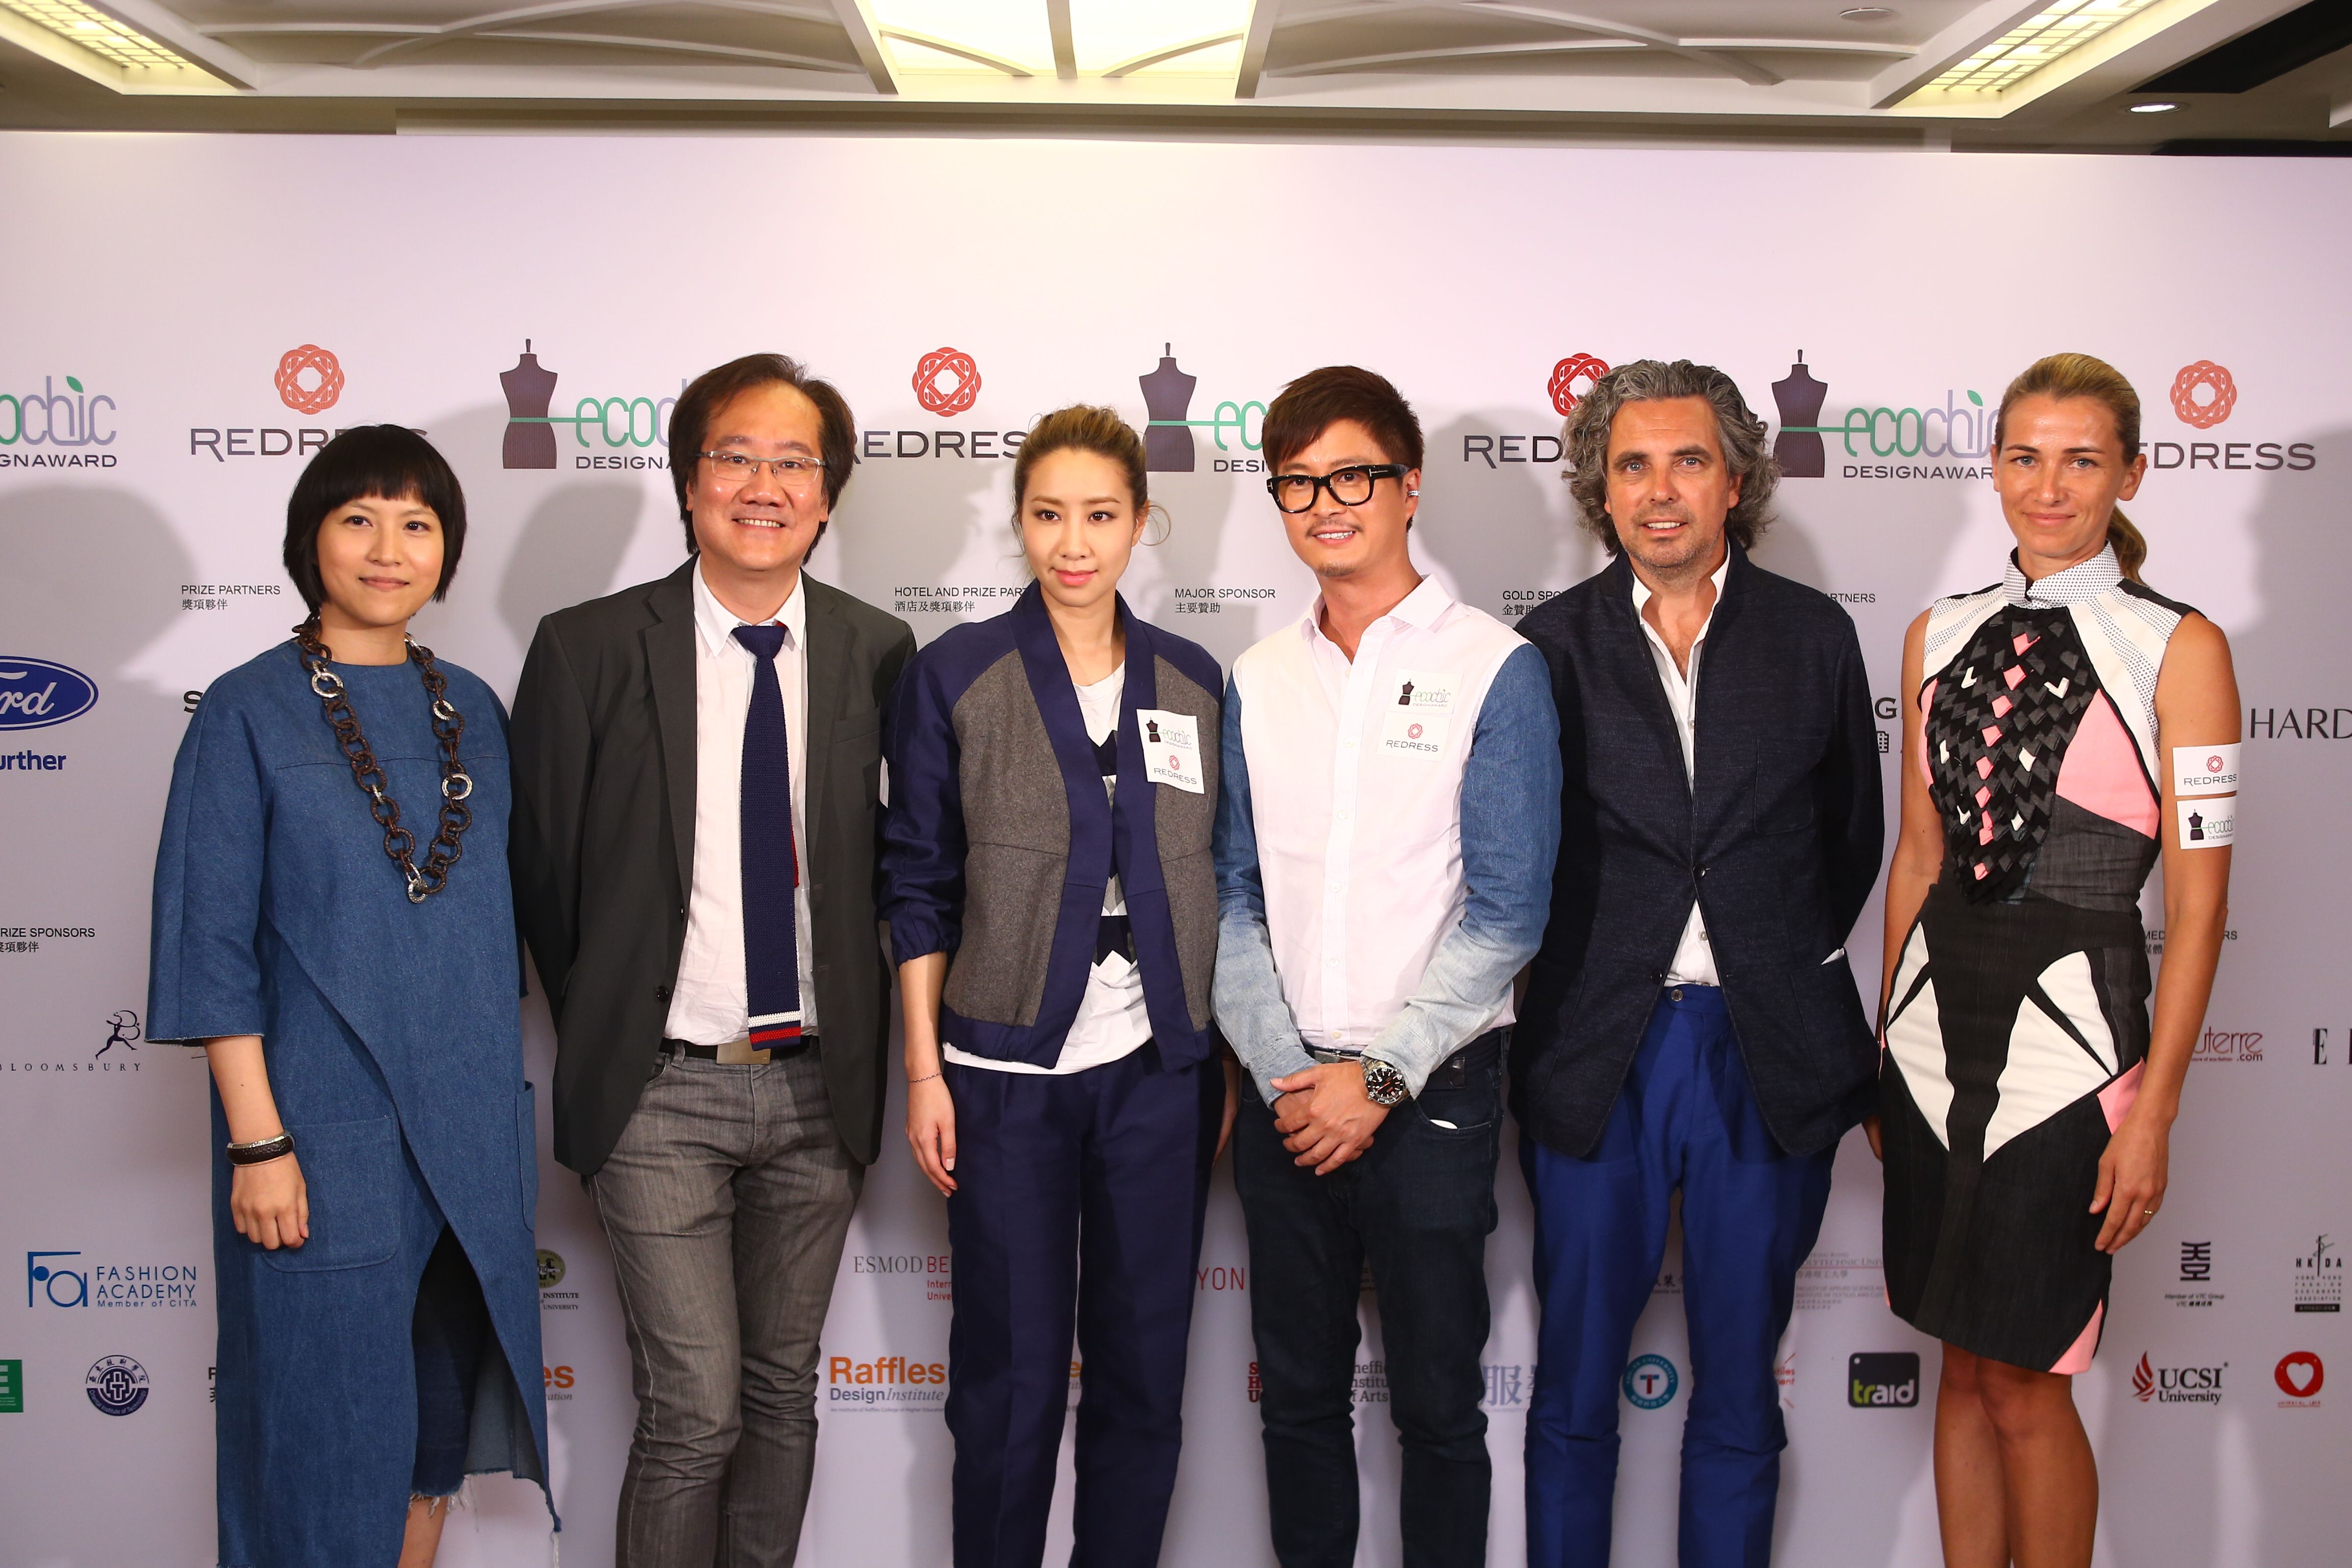 From left to right, Cherry Wong, The EcoChic Design Award co-founder, Jerry Liu, Head of CreateHK, Kary Ng, EcoChic Design Award 2014/15 Alumni Prize partner, Dorian Ho, international judge, Raphael le Masne de Chermont, Executive Chairman of Shanghai Tang, and Christina Dean, Redress CEO, at the competition launch event on 3 June 2014 ECDA2014 designcompetition launchevent hongkong sustainablefashion createhk shanghaitang